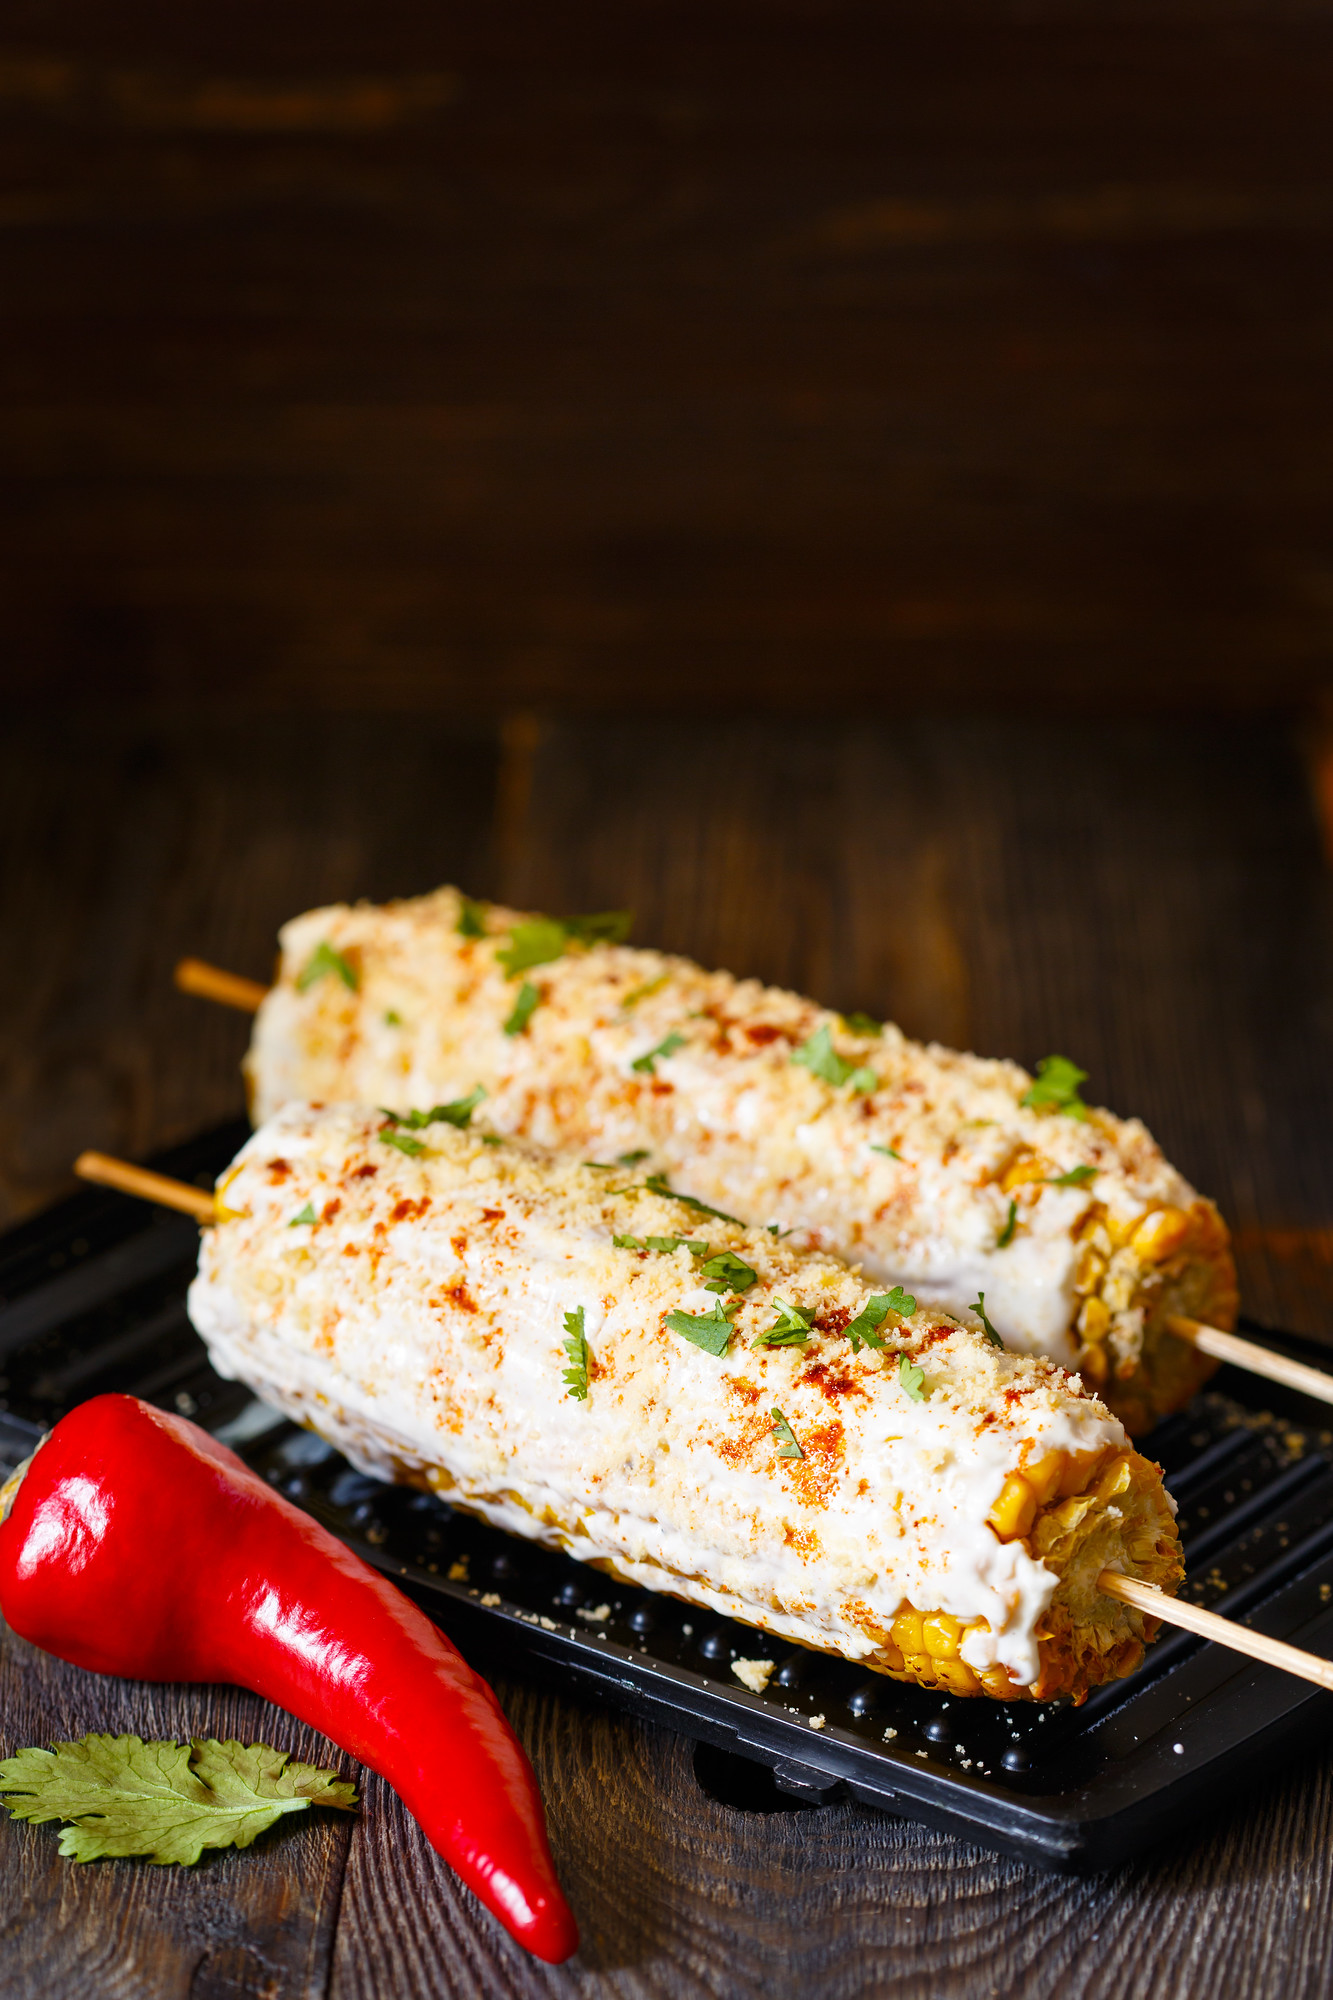 Elote is a popular Honduran food, which is corn on the cob with mayonnaise and sometimes cheese.